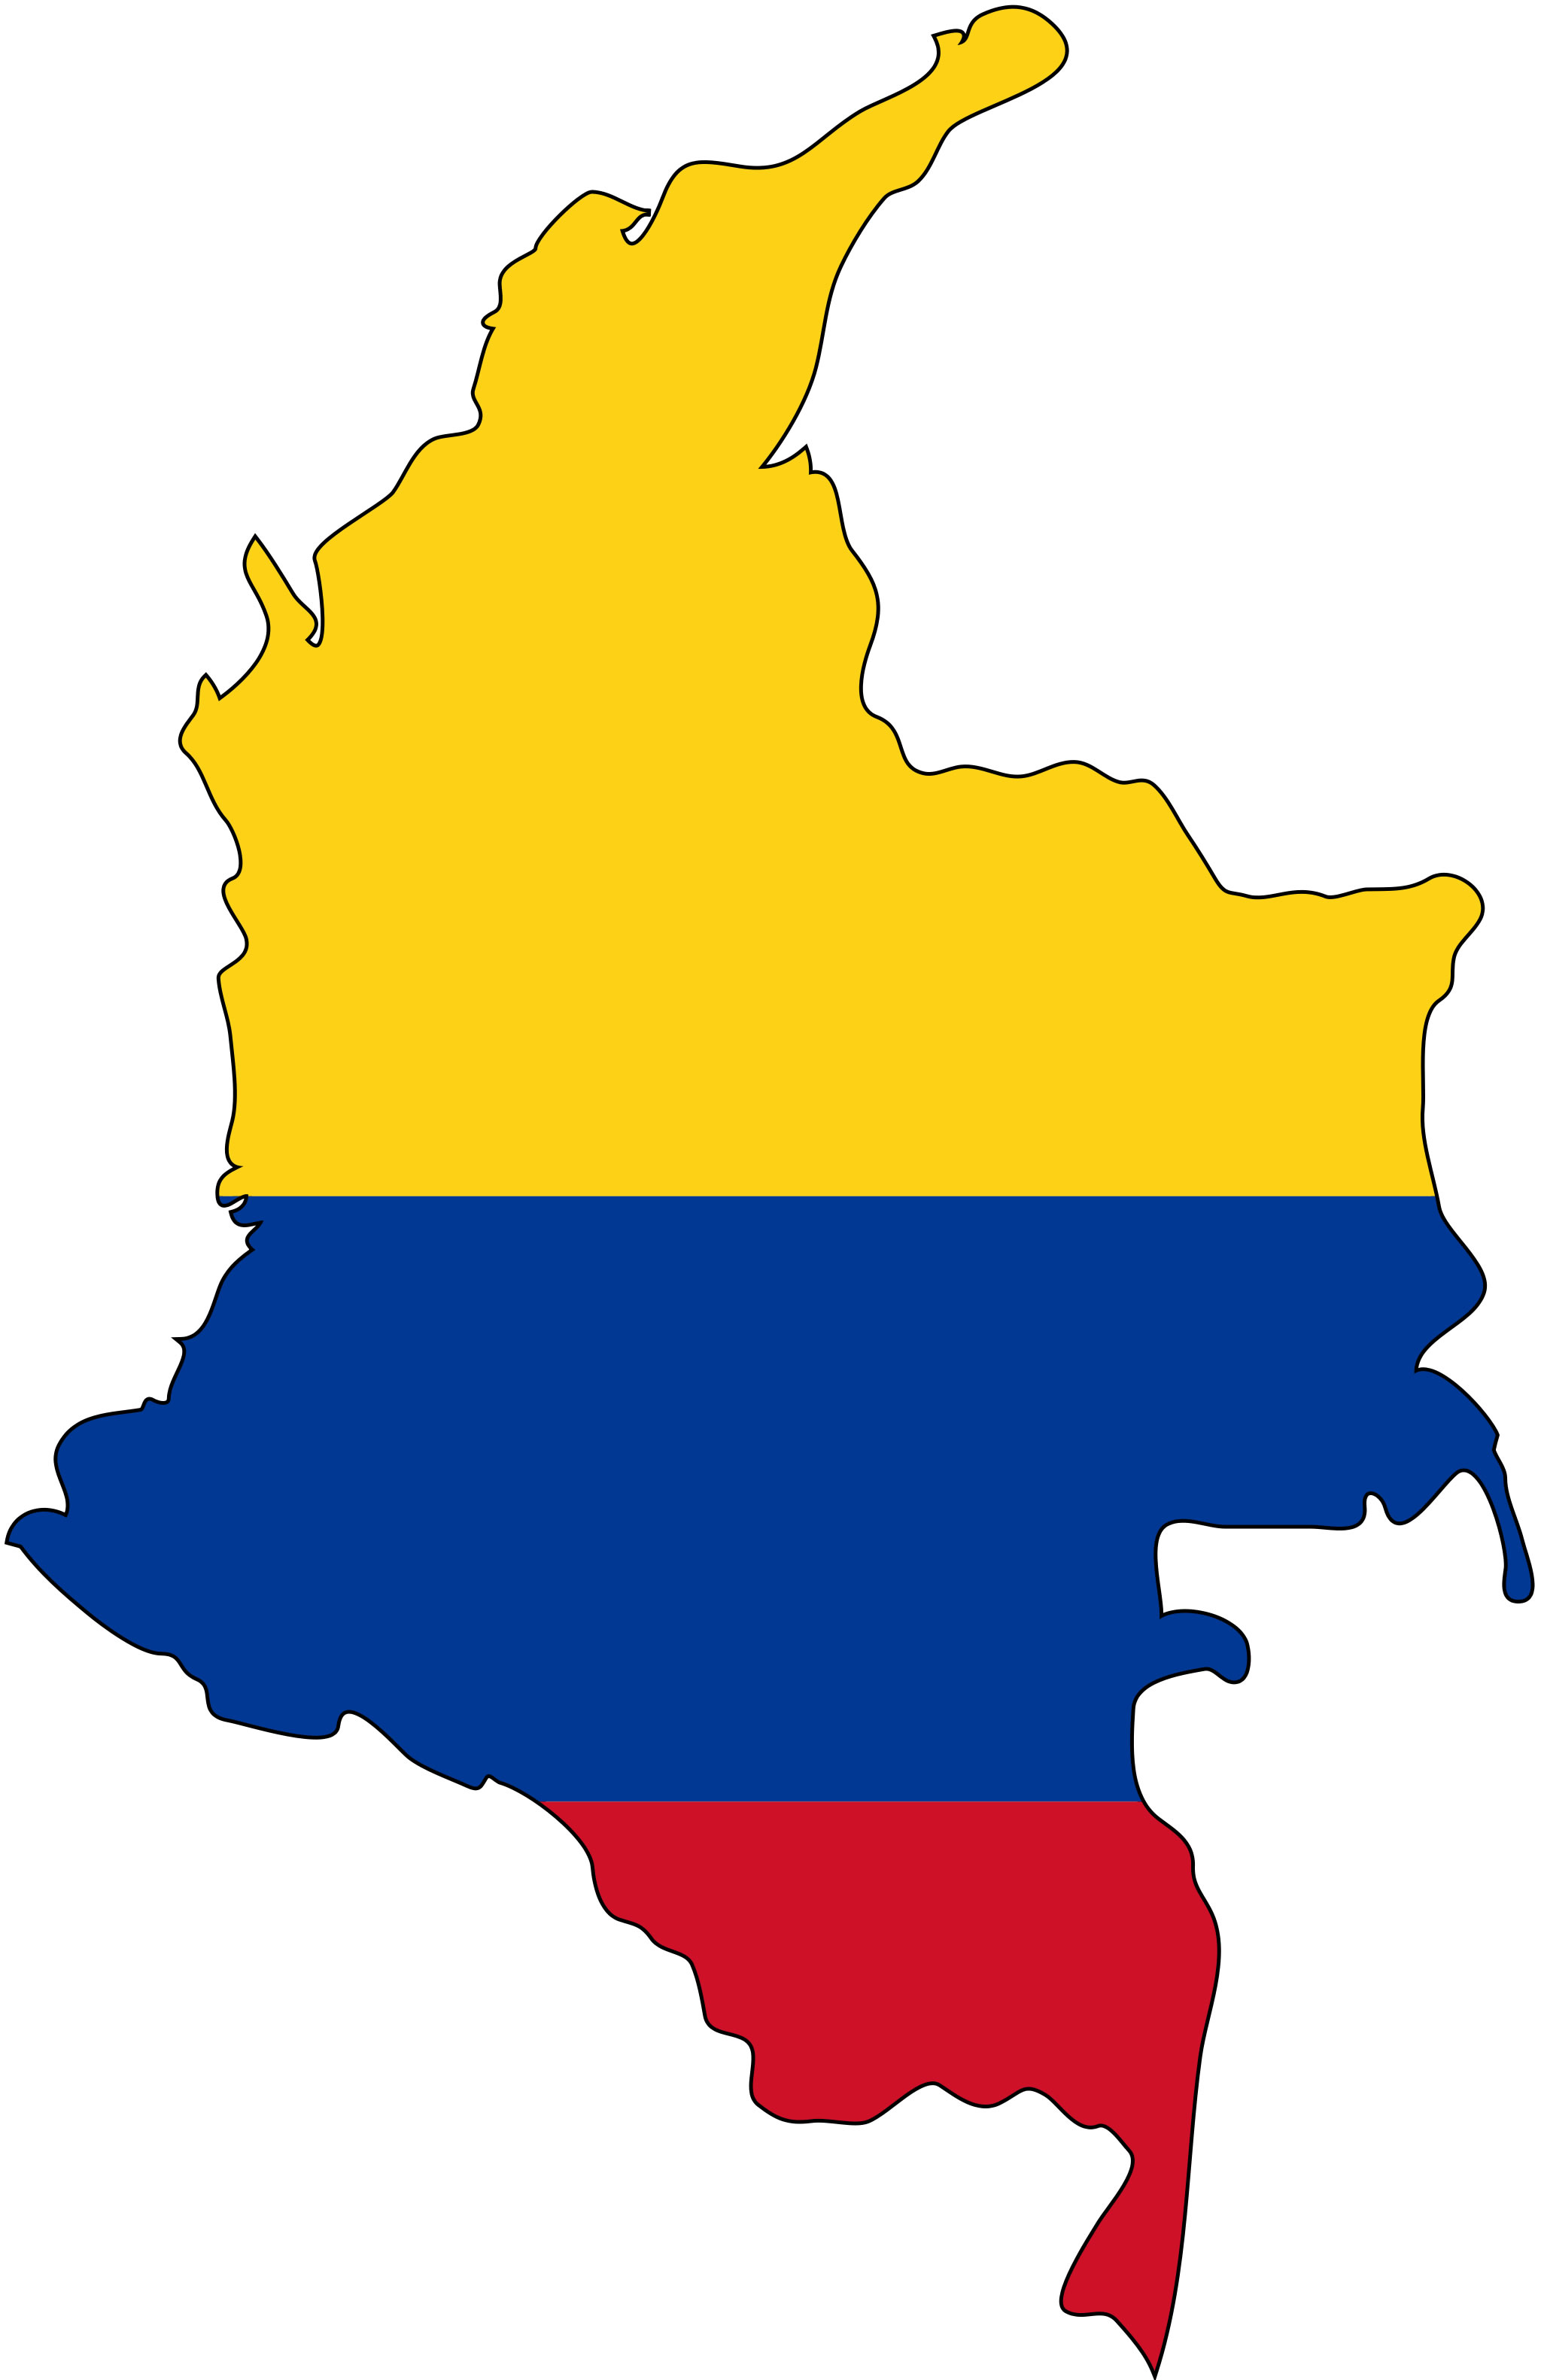 colombie - Image